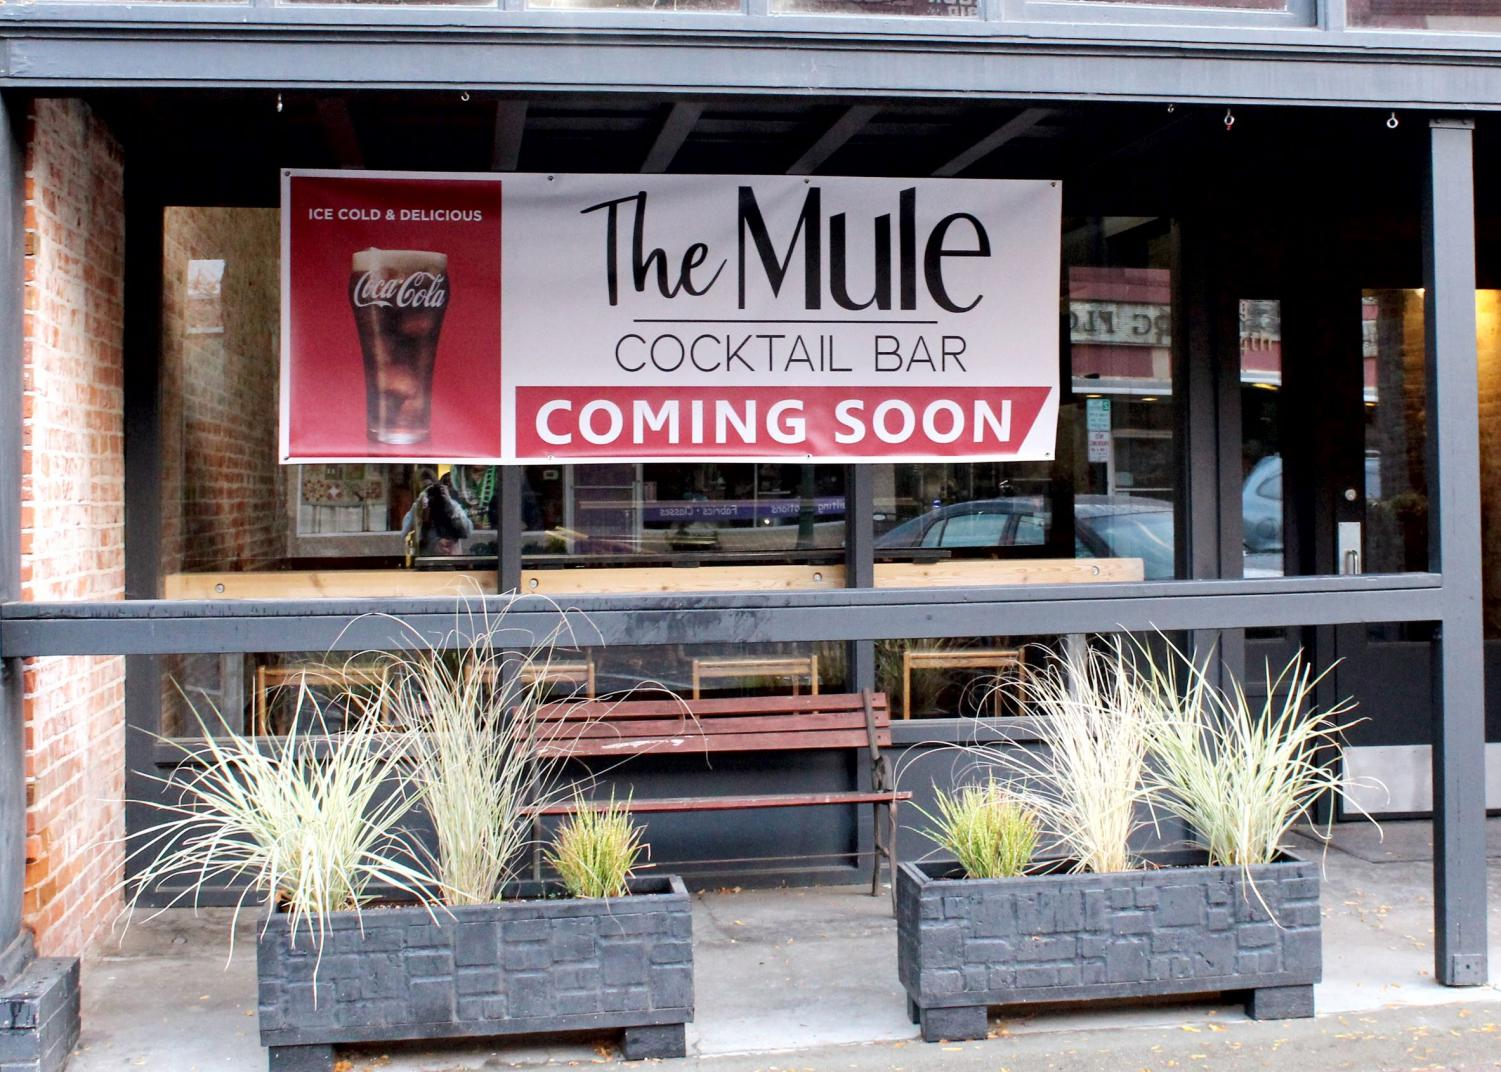 The Mule is a Cocktail Bar that is owned by Sarah Schneider Beauchamp and Russell Colmore which is soon to come to downtown Ellensburg.